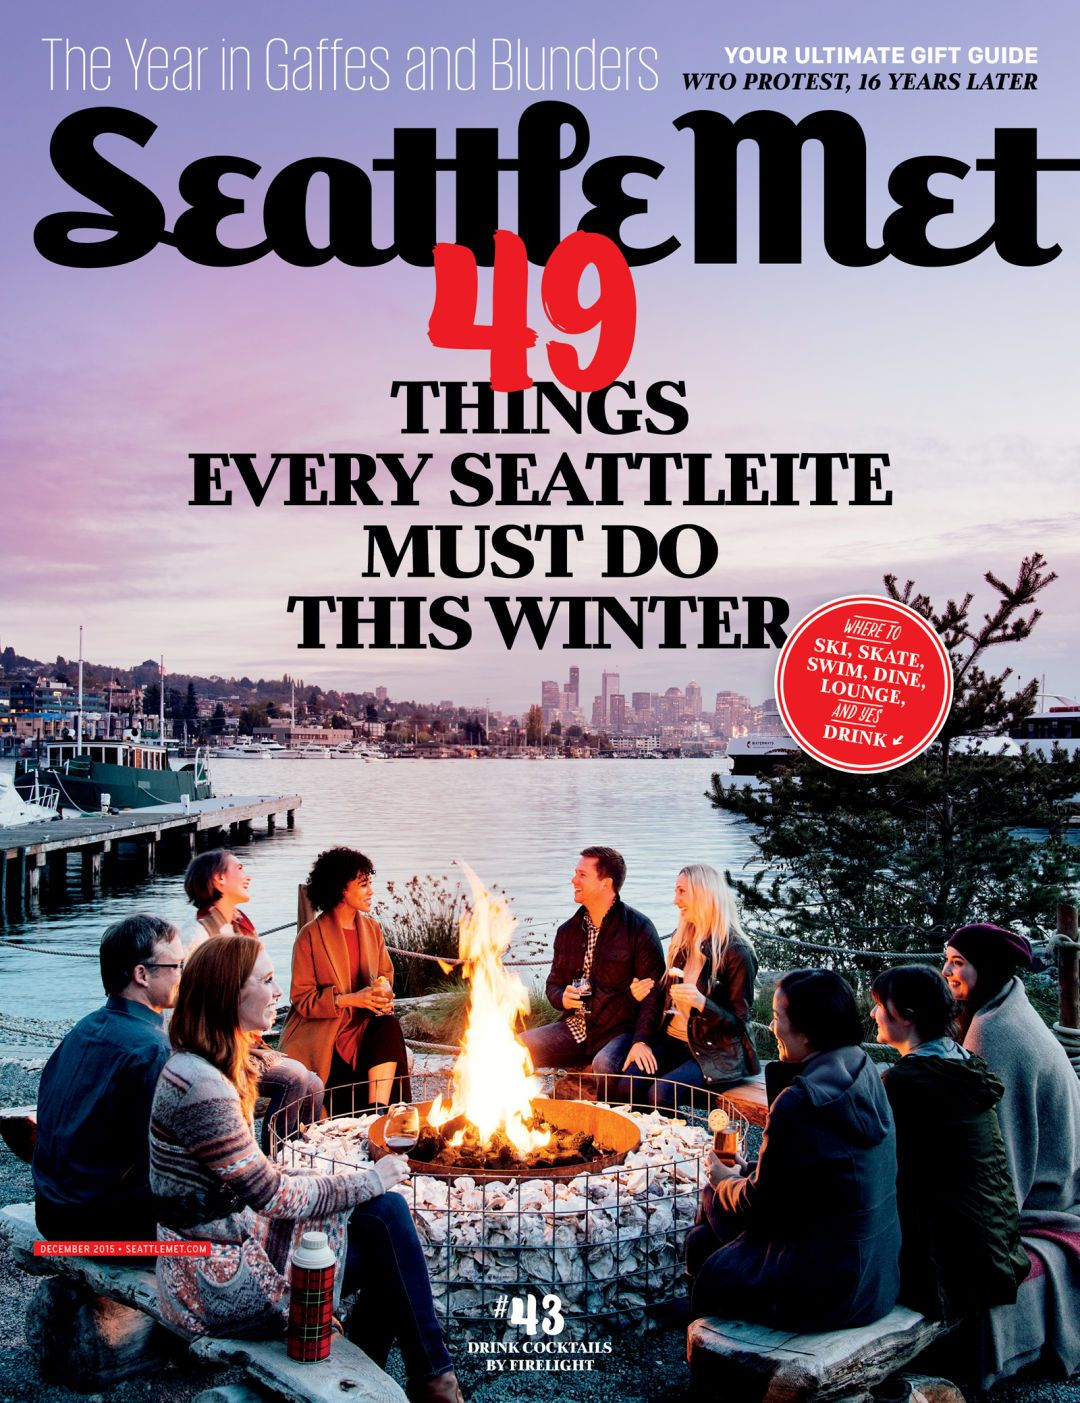 Our December 2015 Issue 49 Things Every Seattleite Must Do This Winter Winter Swimming Drinks